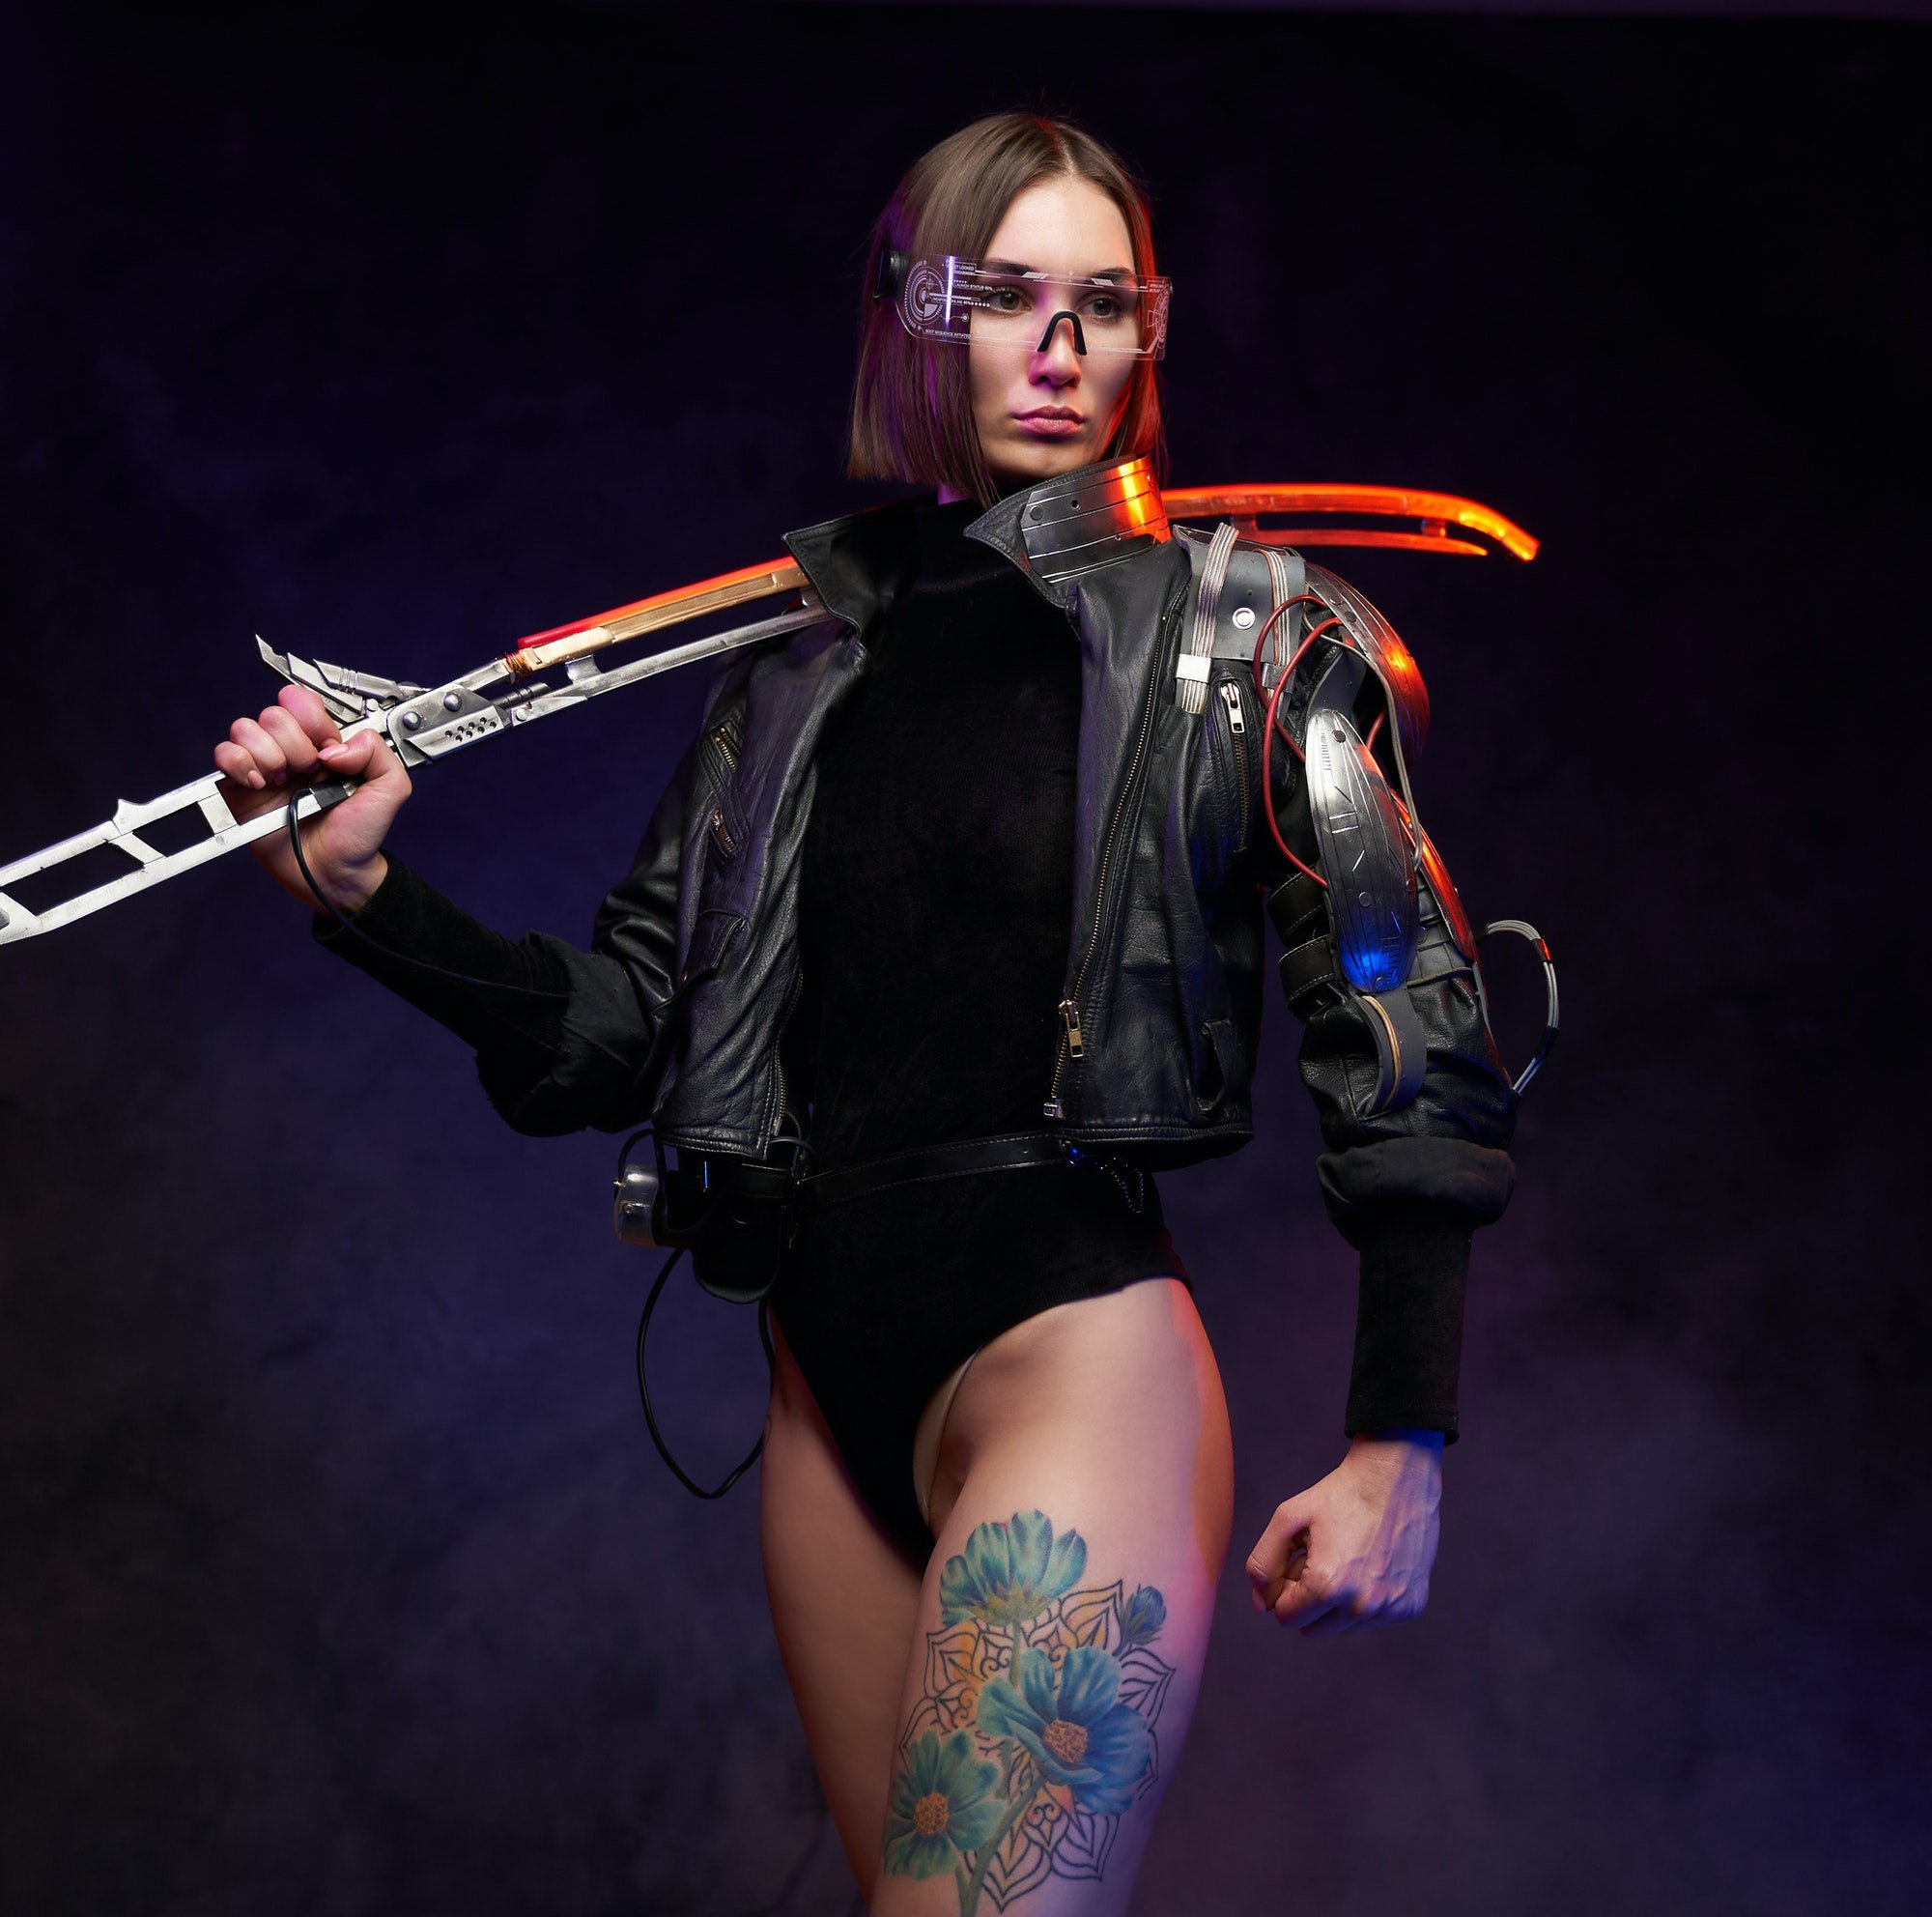 urban-and-cyberpunk-styled-woman-assassin-with-sword-posing-in-studio.jpg